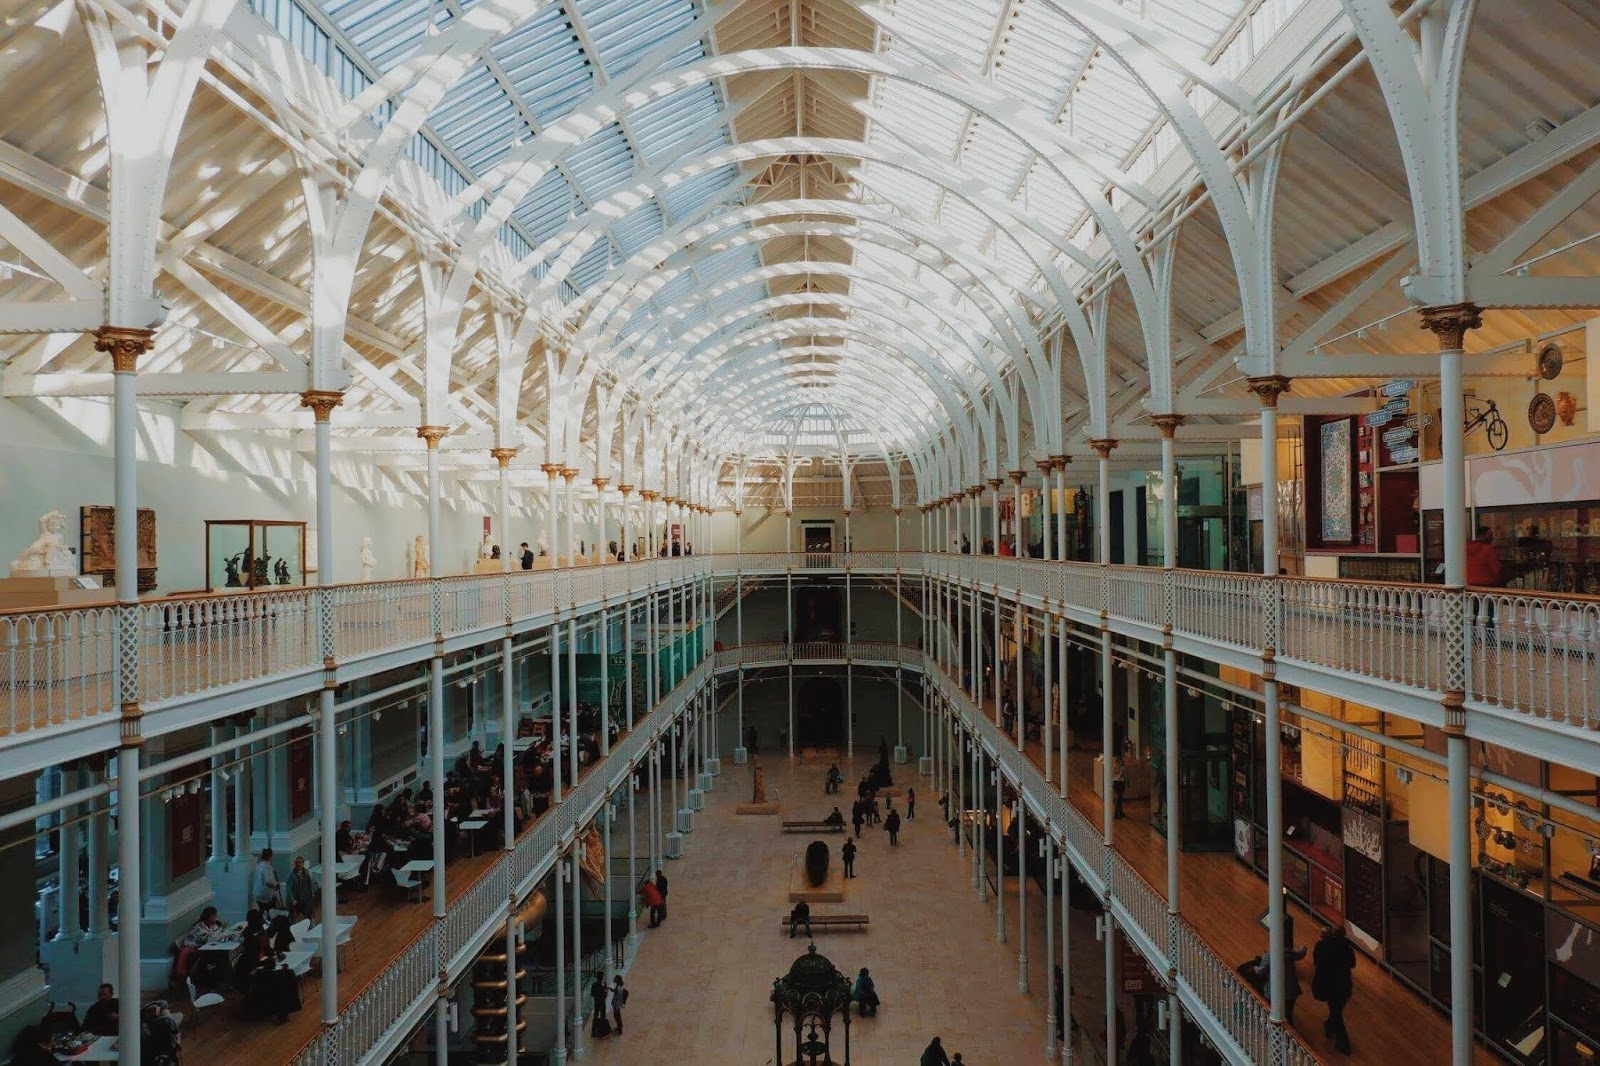 The main gallery in the National Museum of Scotland